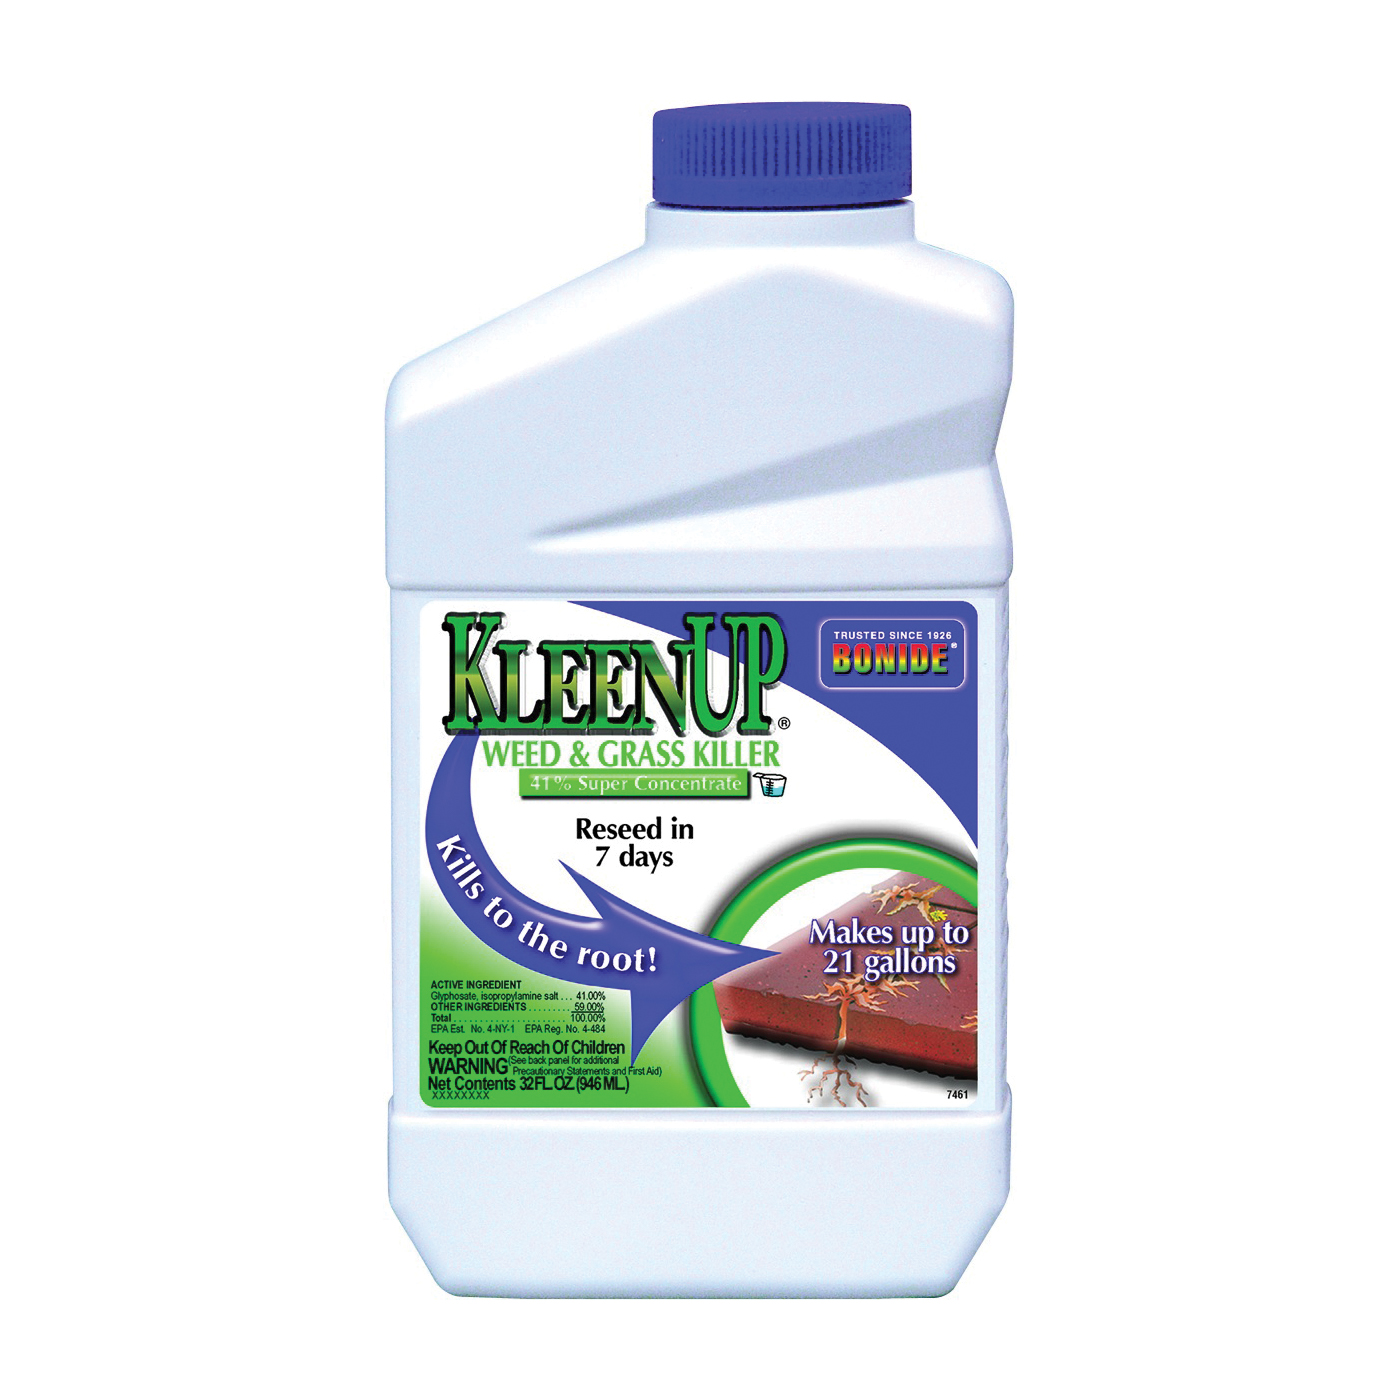 Picture of Bonide 7461 Weed and Grass Killer, Liquid, Amber/Light Brown, 12 qt Package